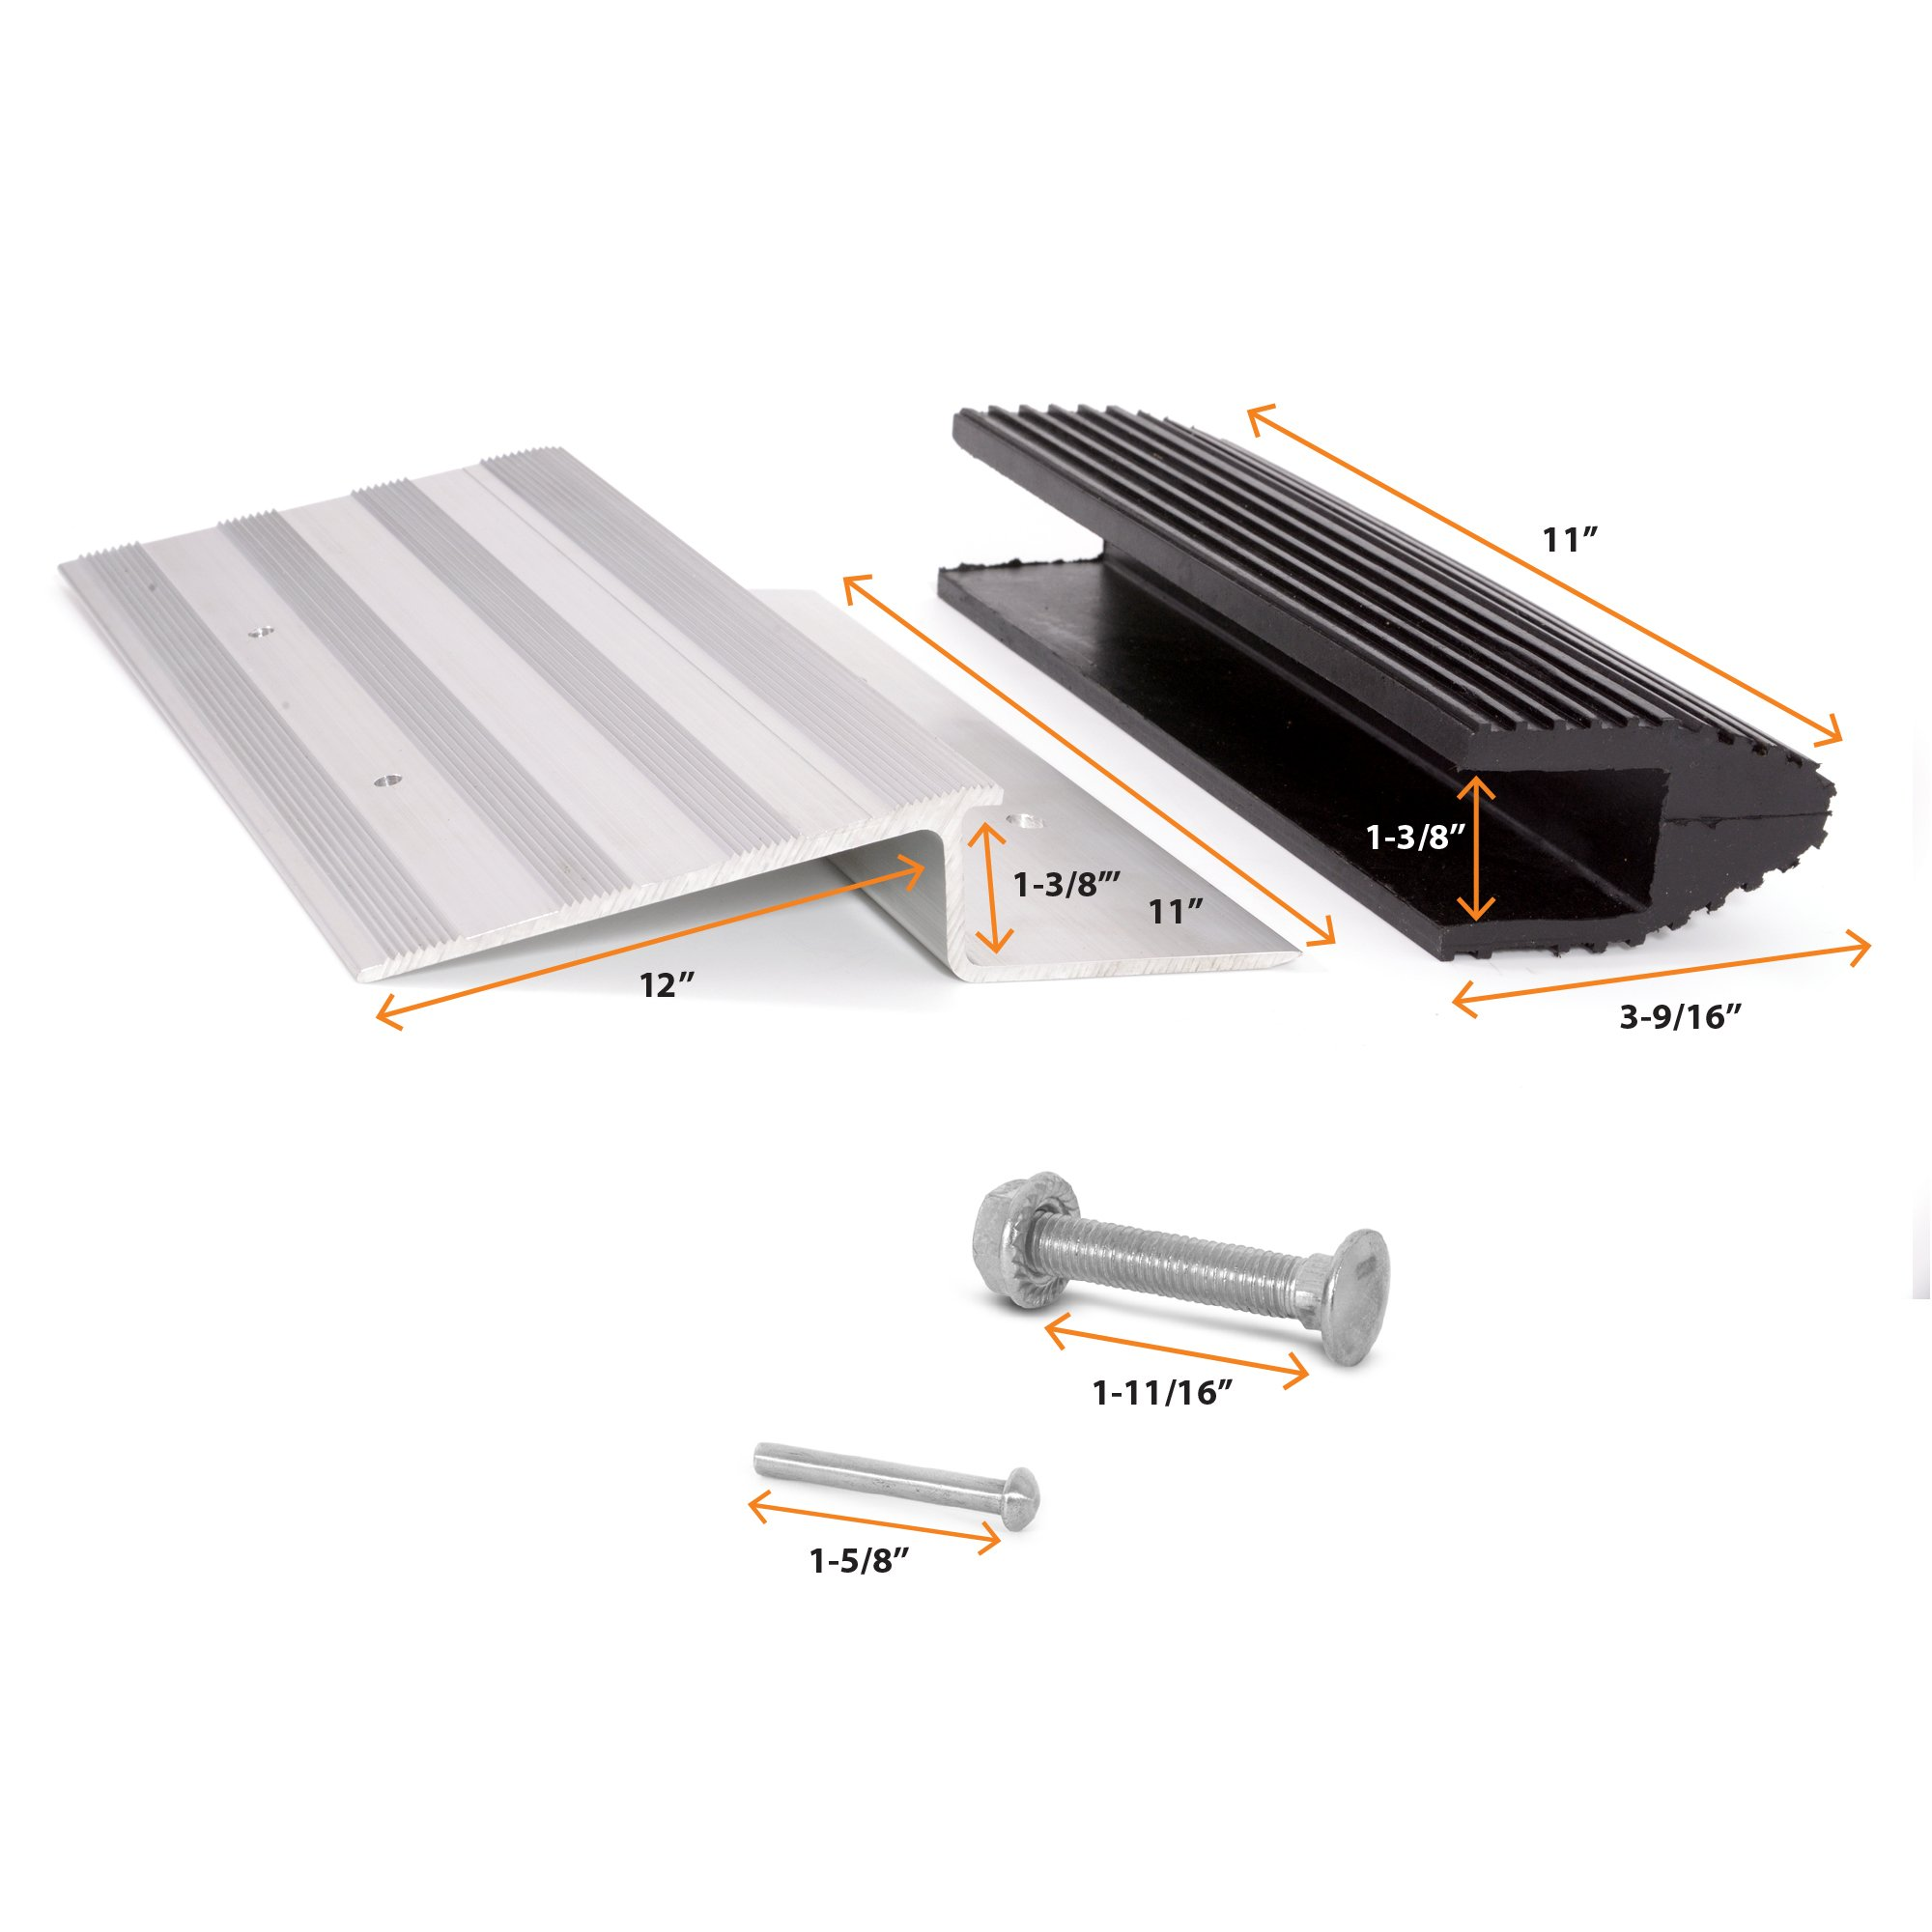 Wide Truck Ramps - 12-inch Aluminum Quick-Ramp Kit by AFA Tooling by AFA Tooling Approved for Automotive (Image #4)